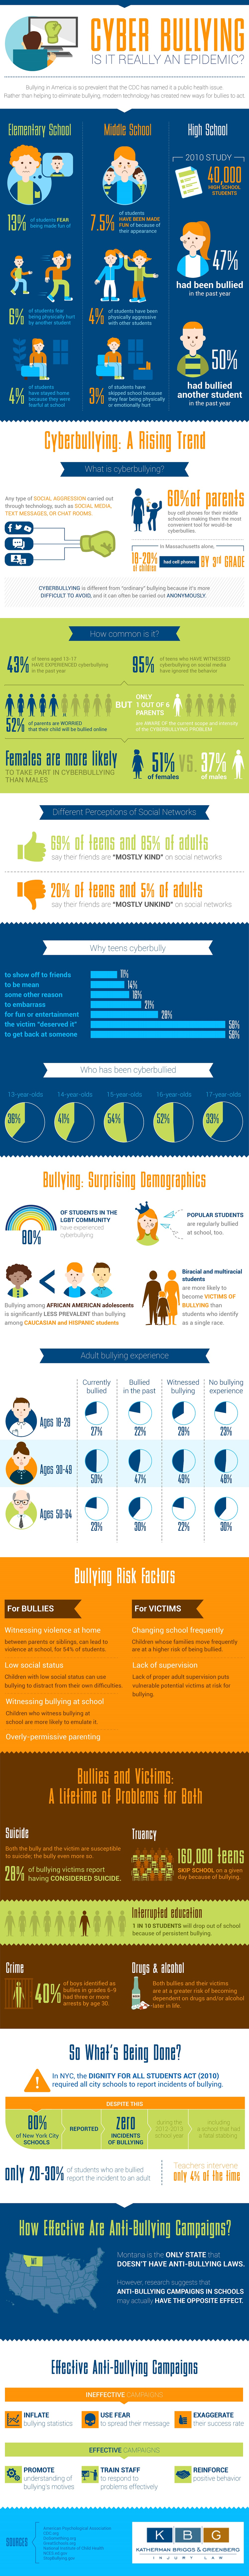 Bullying_infographic_kbg